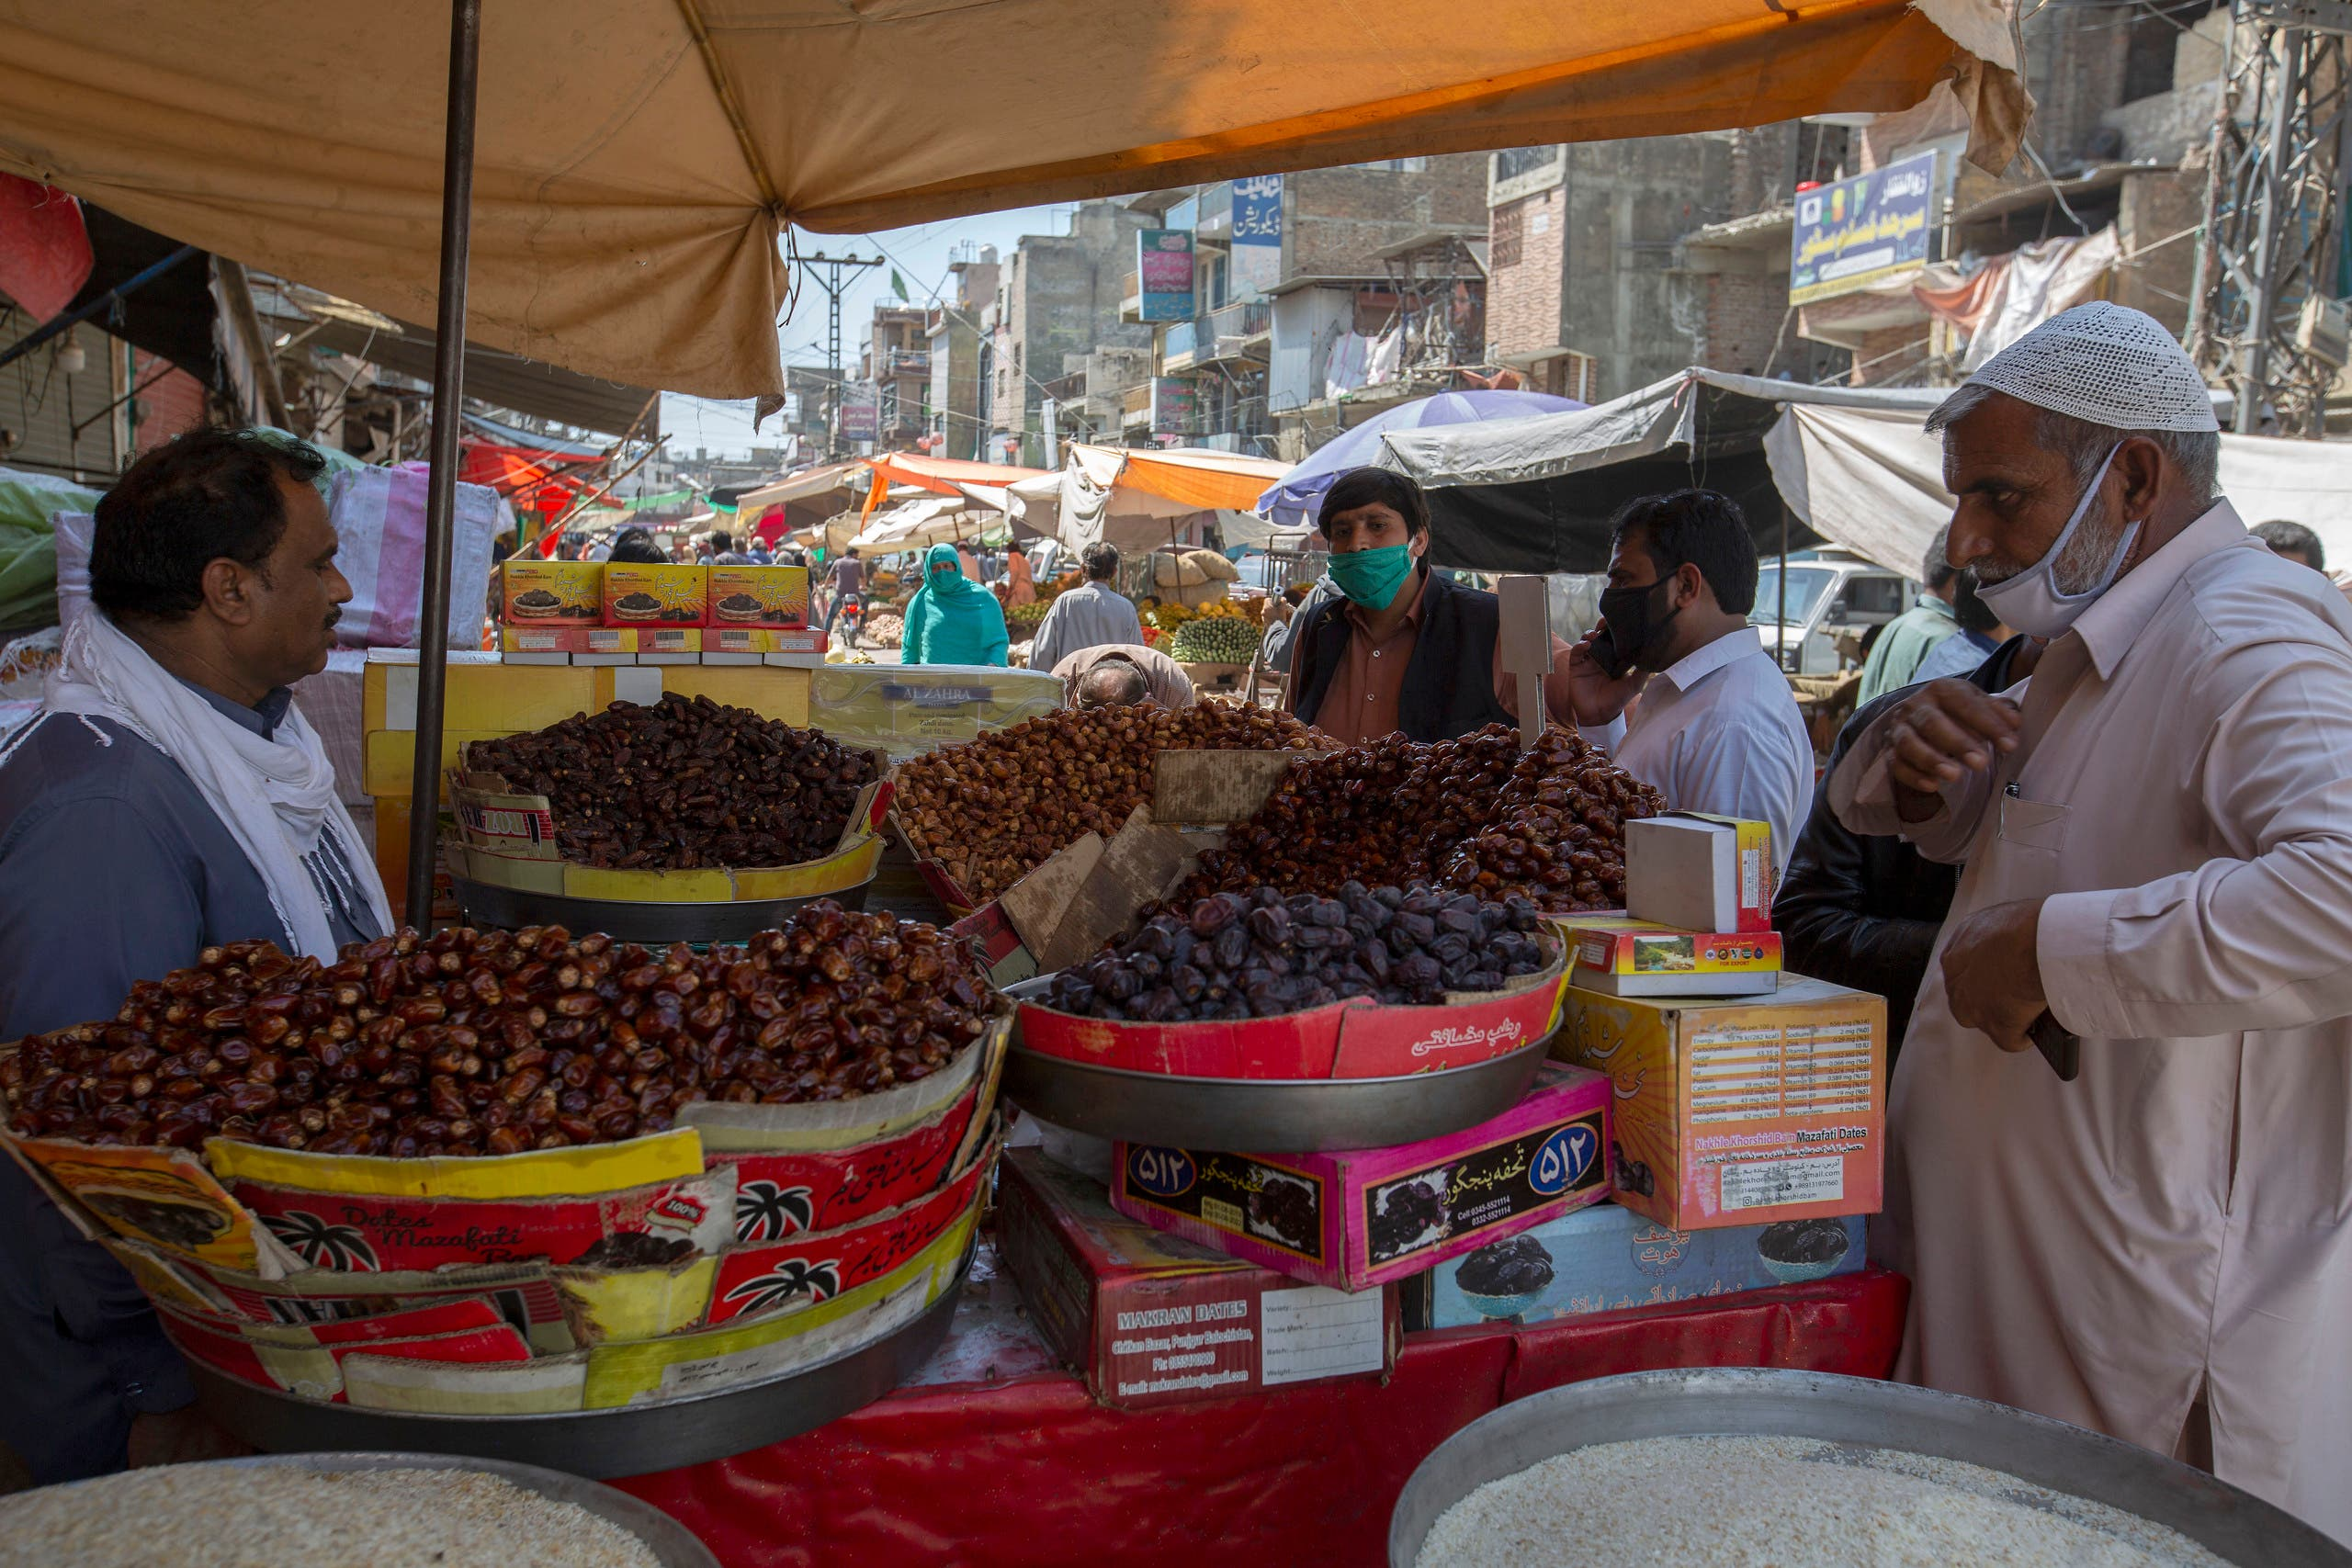 Consumers buy dates for the upcoming fasting month of Ramadan, during a lockdown to contain the spread of coronavirus, in Rawalpindi, Pakistan, on Tuesday, April 21, 2020. (AP)